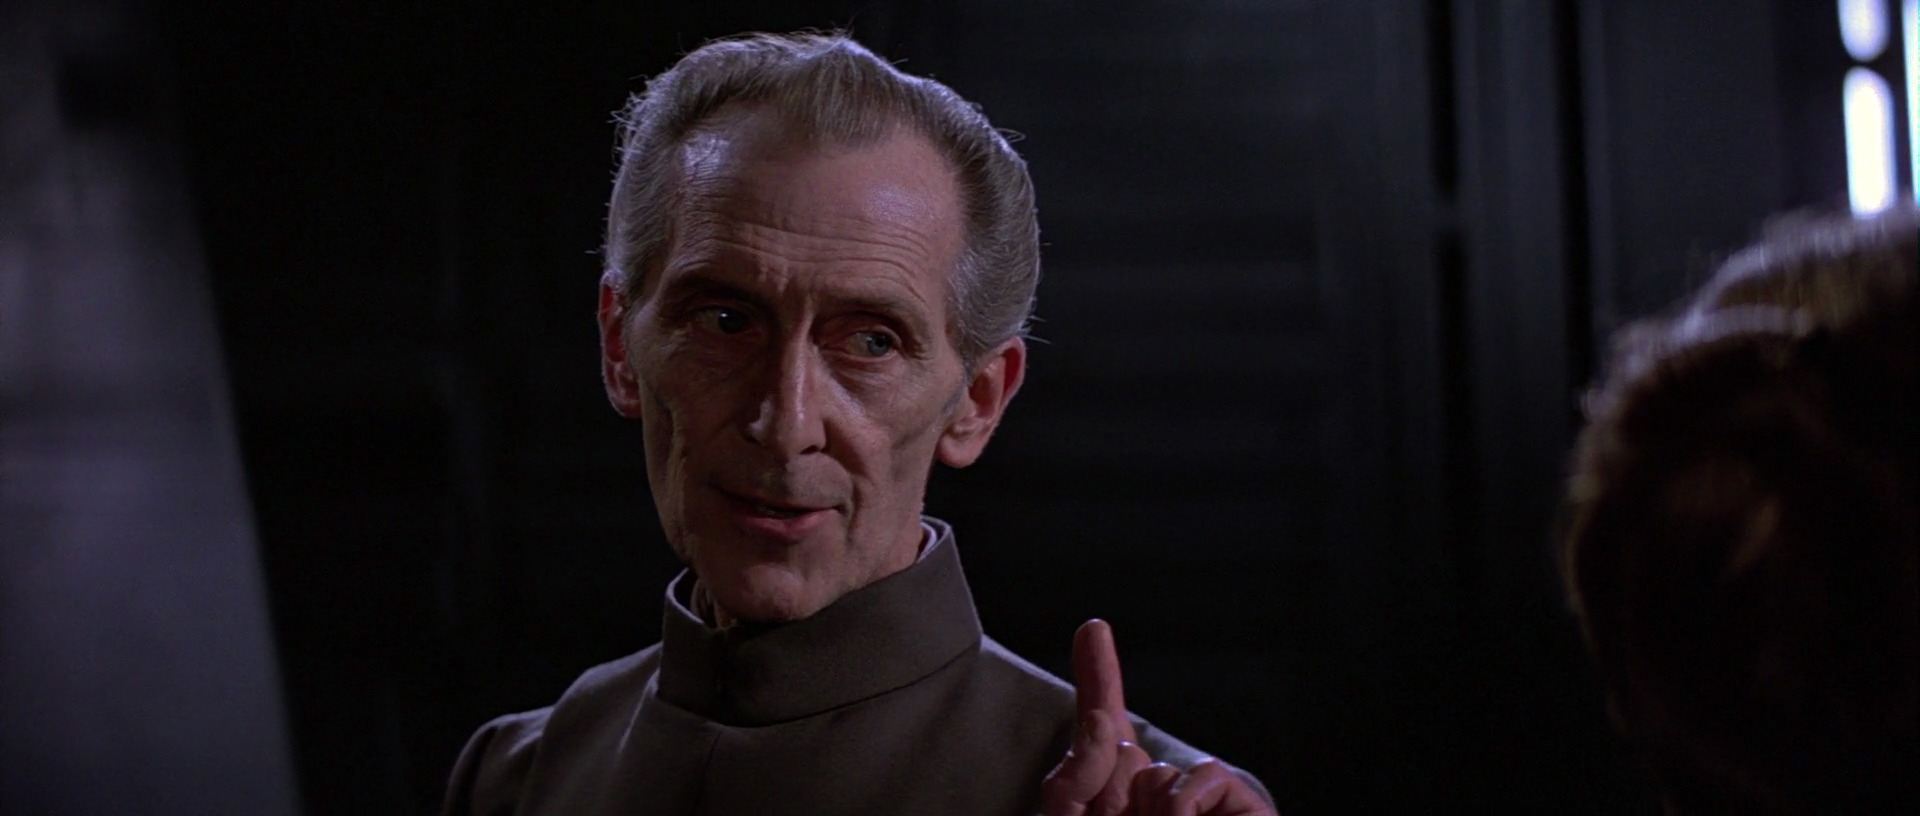 Grand Moff Tarkin Avatar